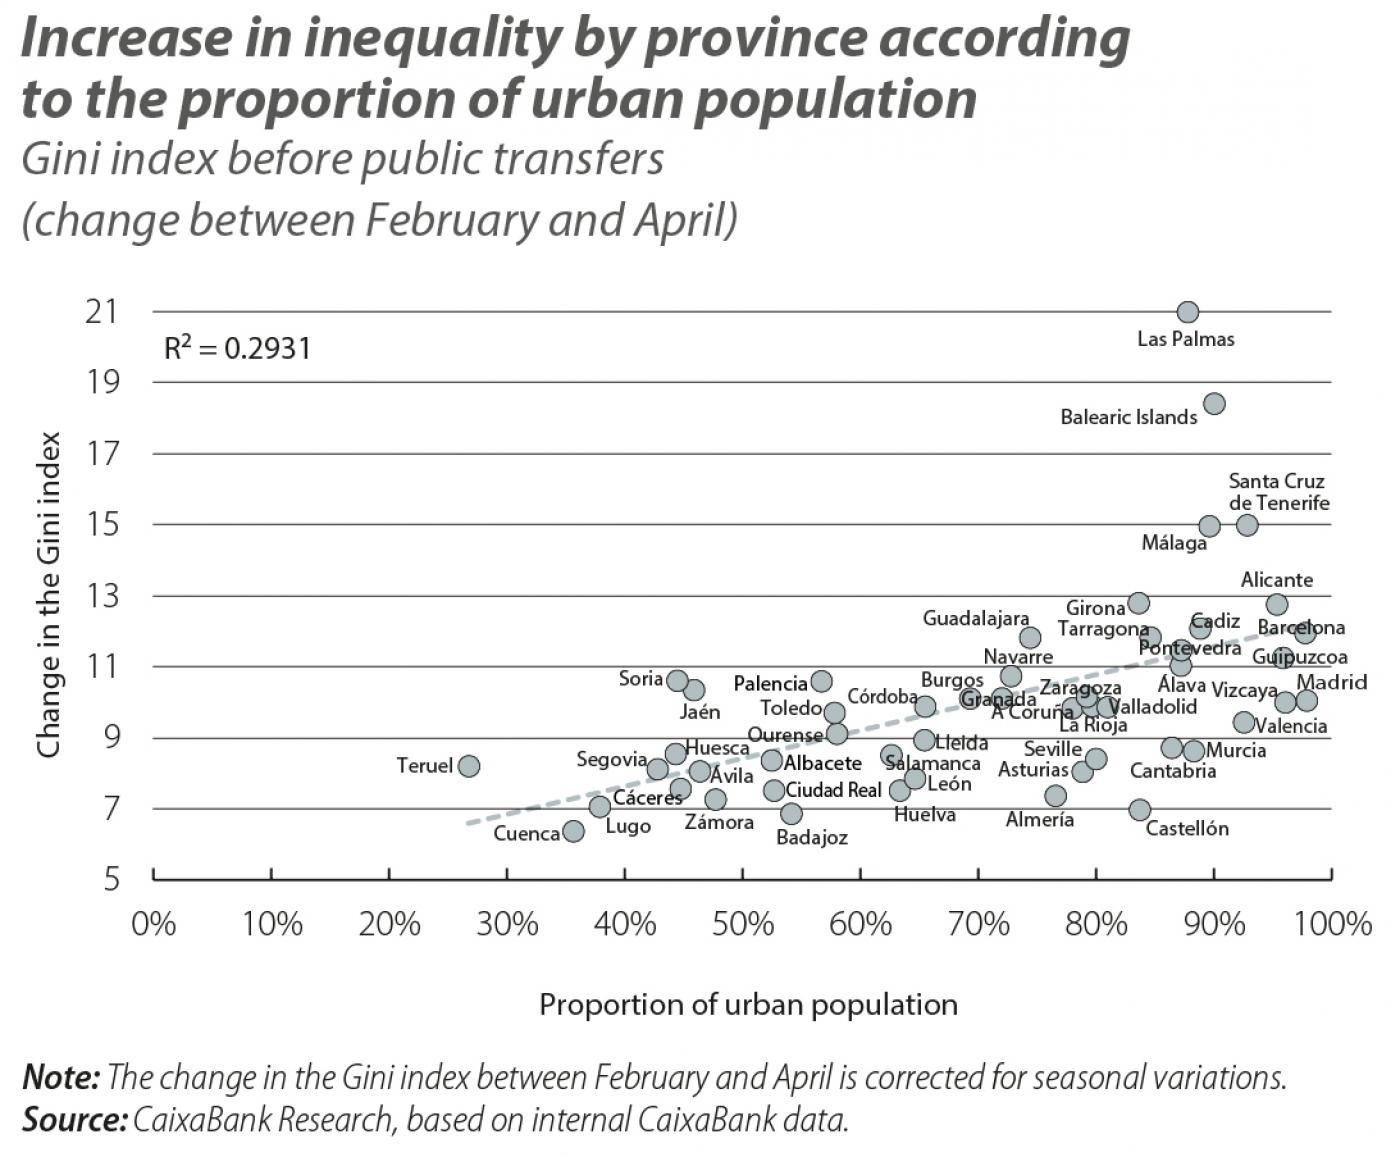 Increase in inequality by province according to the proportion of urban population